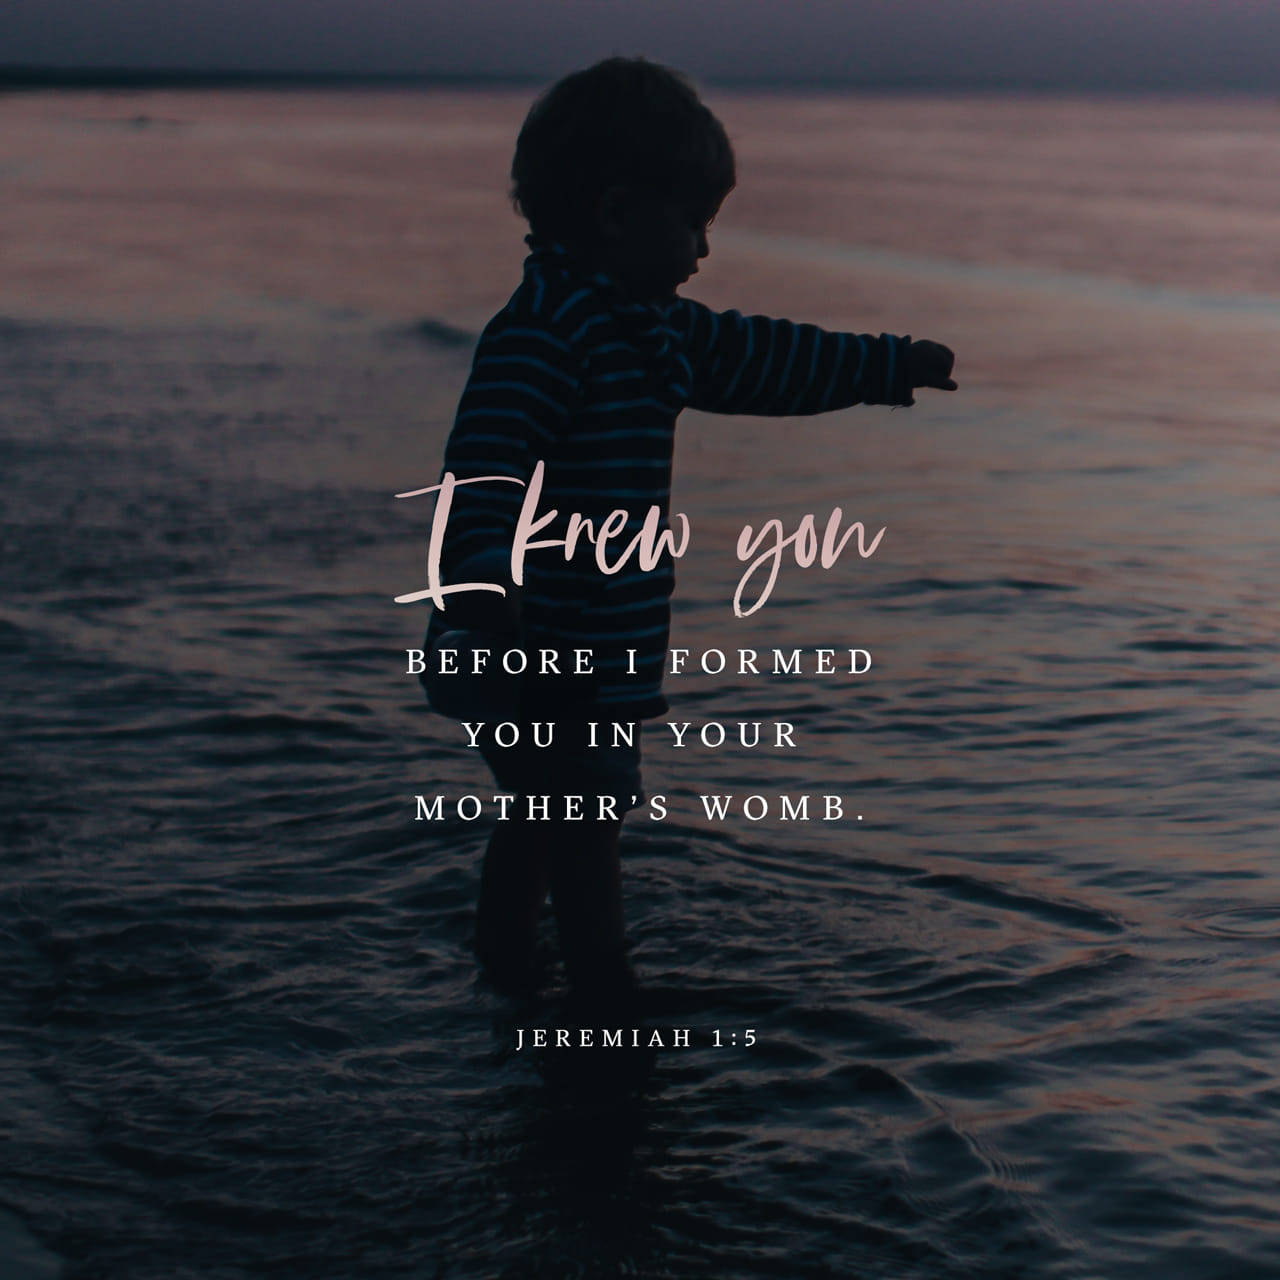 Jeremiah 1:5 Before I formed thee in the belly I knew thee; and before thou camest forth out of the womb I sanctified thee, and I ordained thee a prophet unto the nations. | King James Version (KJV)